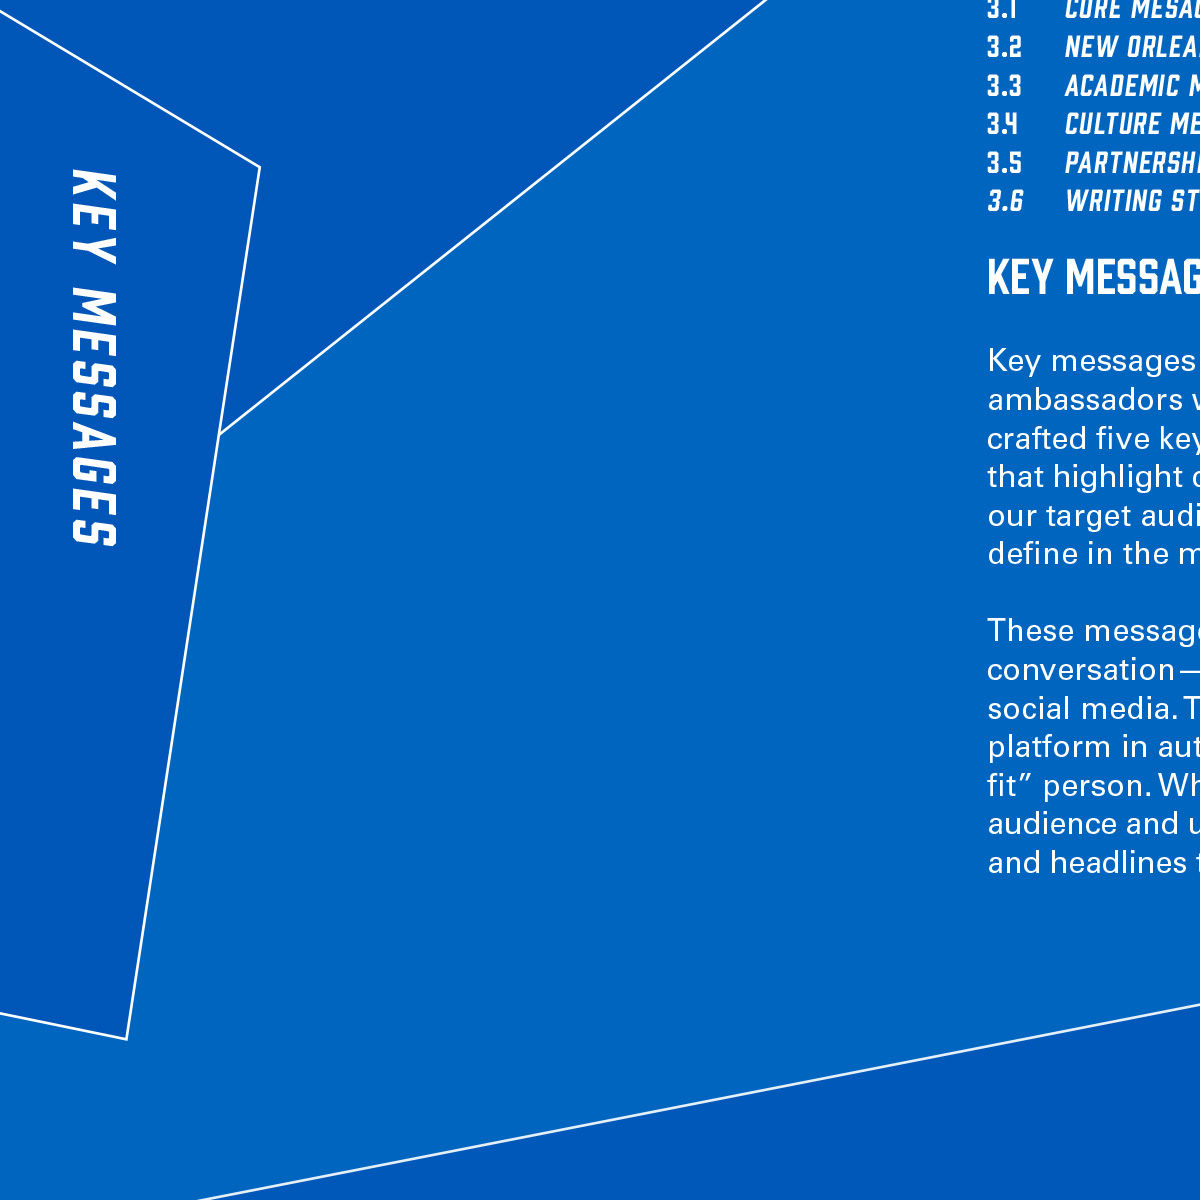 Cover page from brand guide. Image text: Key messages.